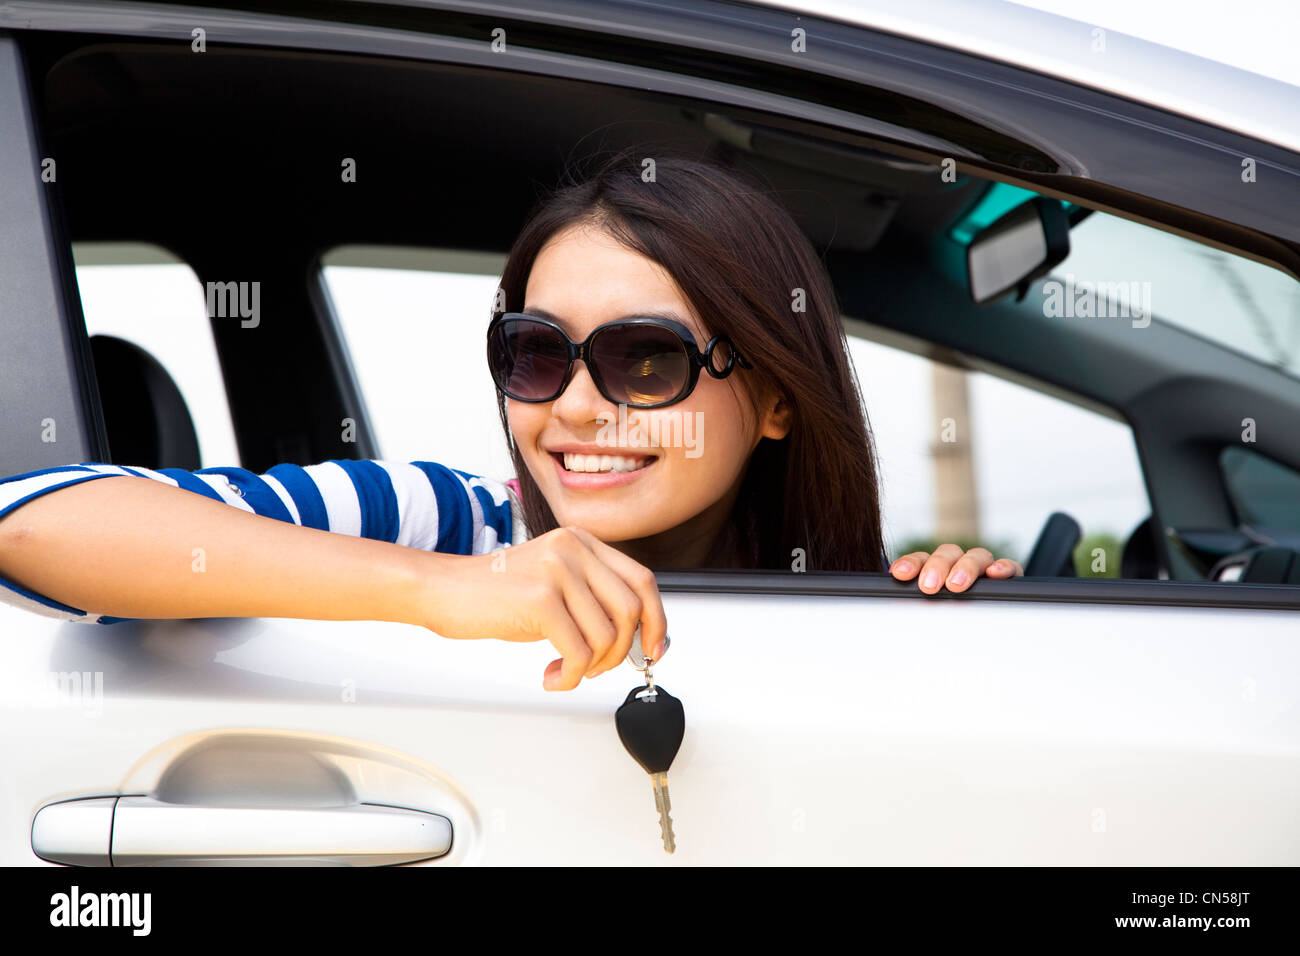 young woman holding key in car - Stock Image